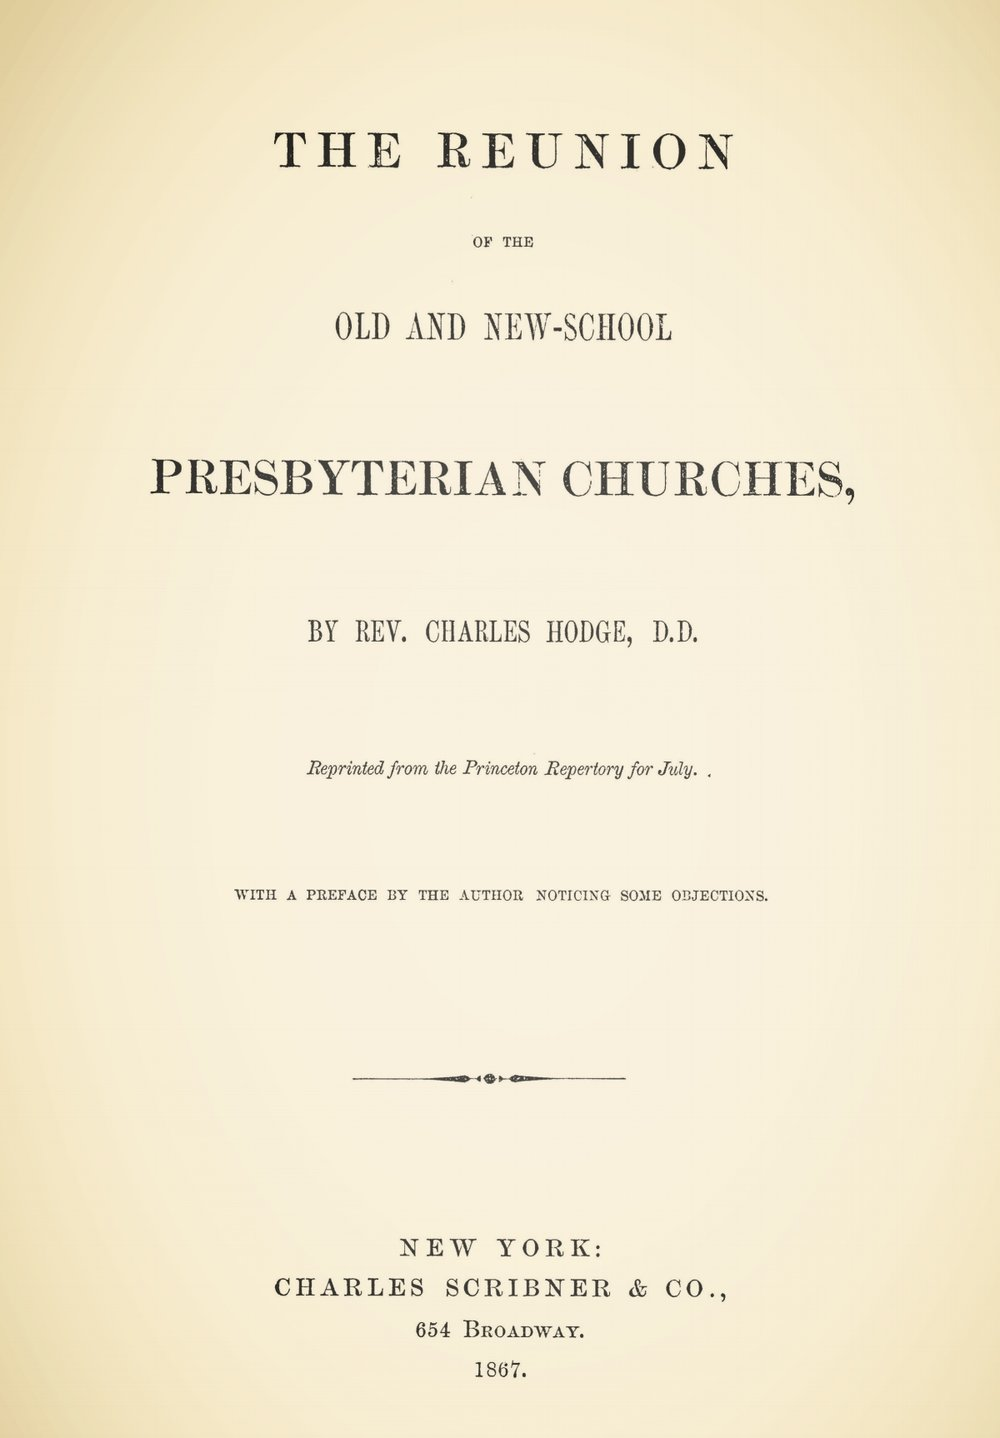 Hodge, Charles, The Reunion of the Old and New-School Presbyterian Churches Title Page.jpg